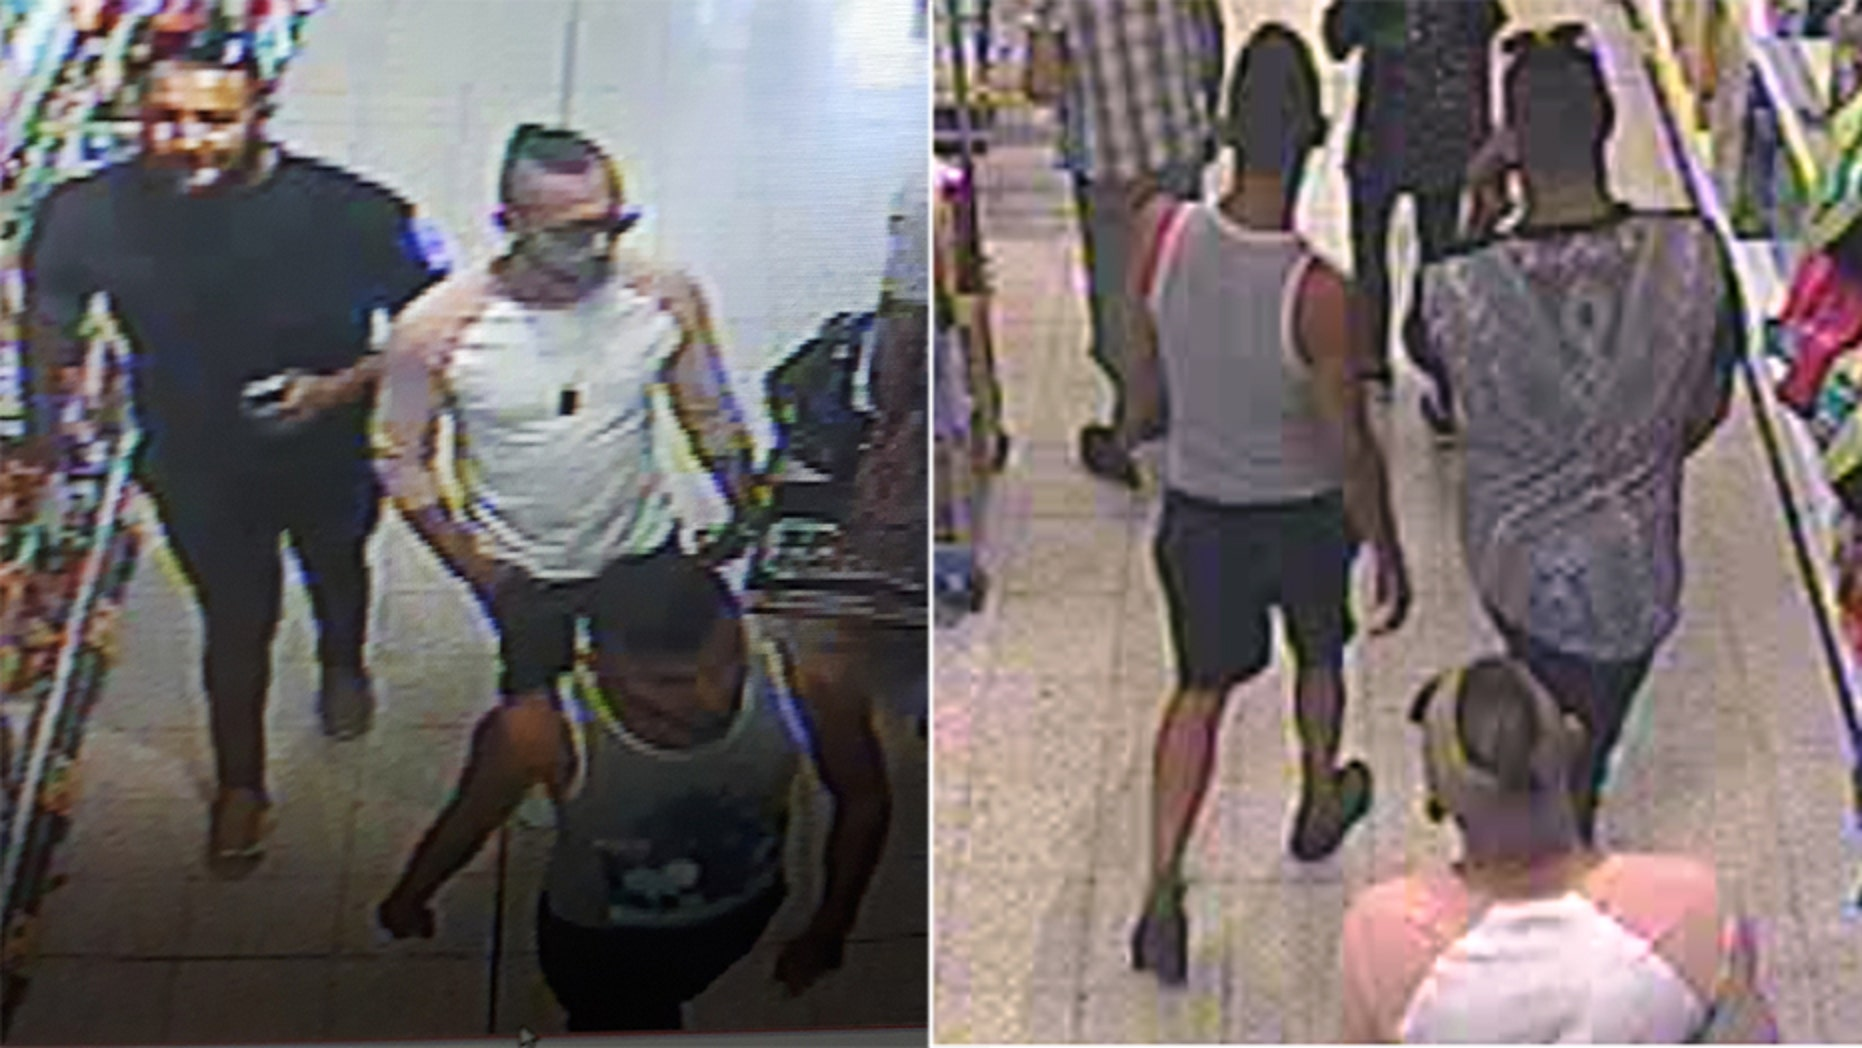 Authorities in England are looking for 3 men after a boy was seriously injured in a suspected acid attack on Sunday.